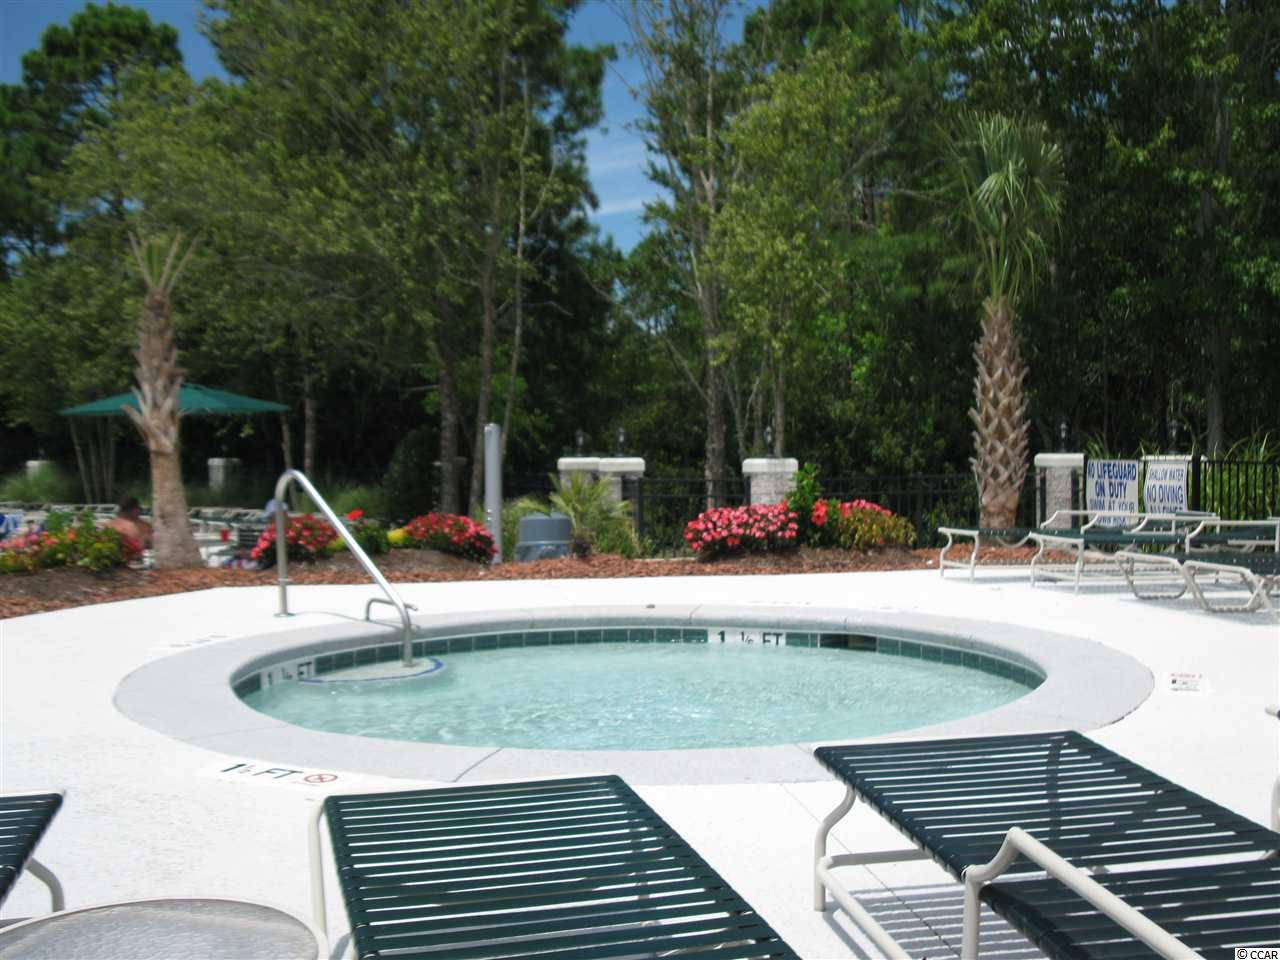 Barefoot Resort - Sweetbriar  house now for sale